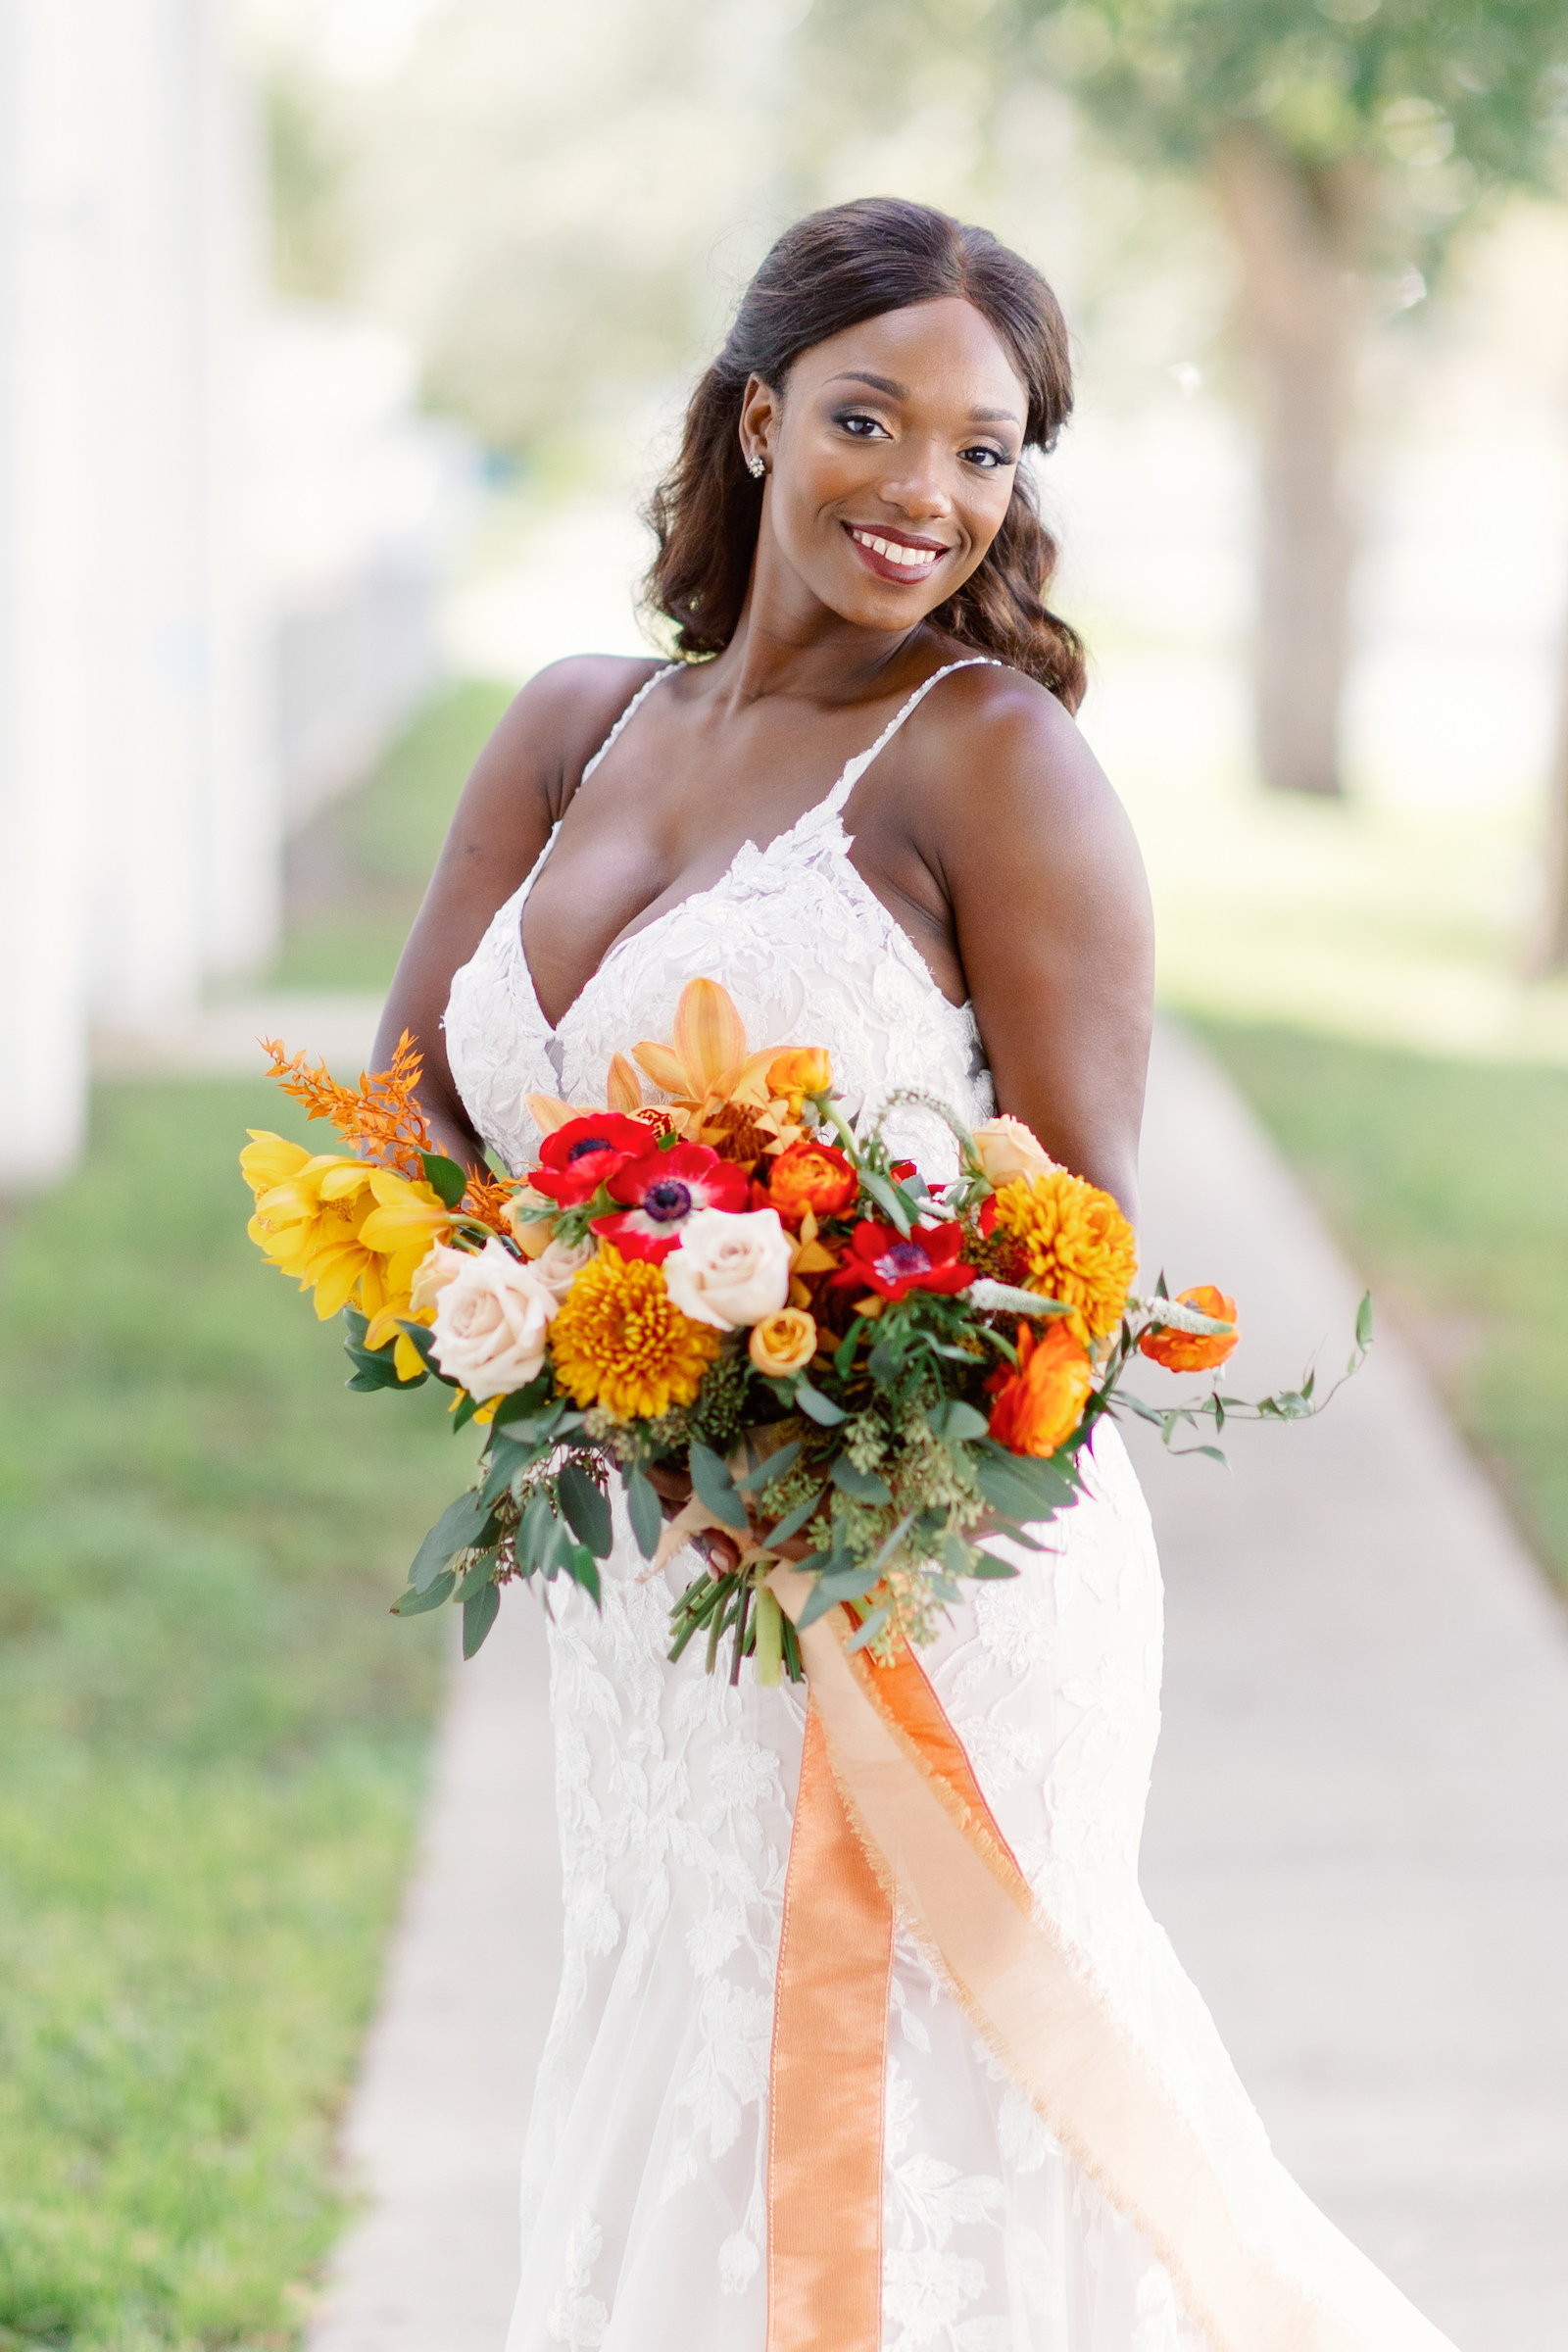 Modern Boho Florida Bride Holding Bridal Bouquet, Wearing White Mermaid Style Wedding Gown with V Neckline and Straps, Autumn-Inspired Wedding Bouquet, Holding Triadic Orange Color Palette, Red Posies, Yellow Flowers, Ivory Roses, Orange Florals with Dark Greenery   Tampa Bay Wedding Planner Coastal Coordinating, Jessica Zenobi